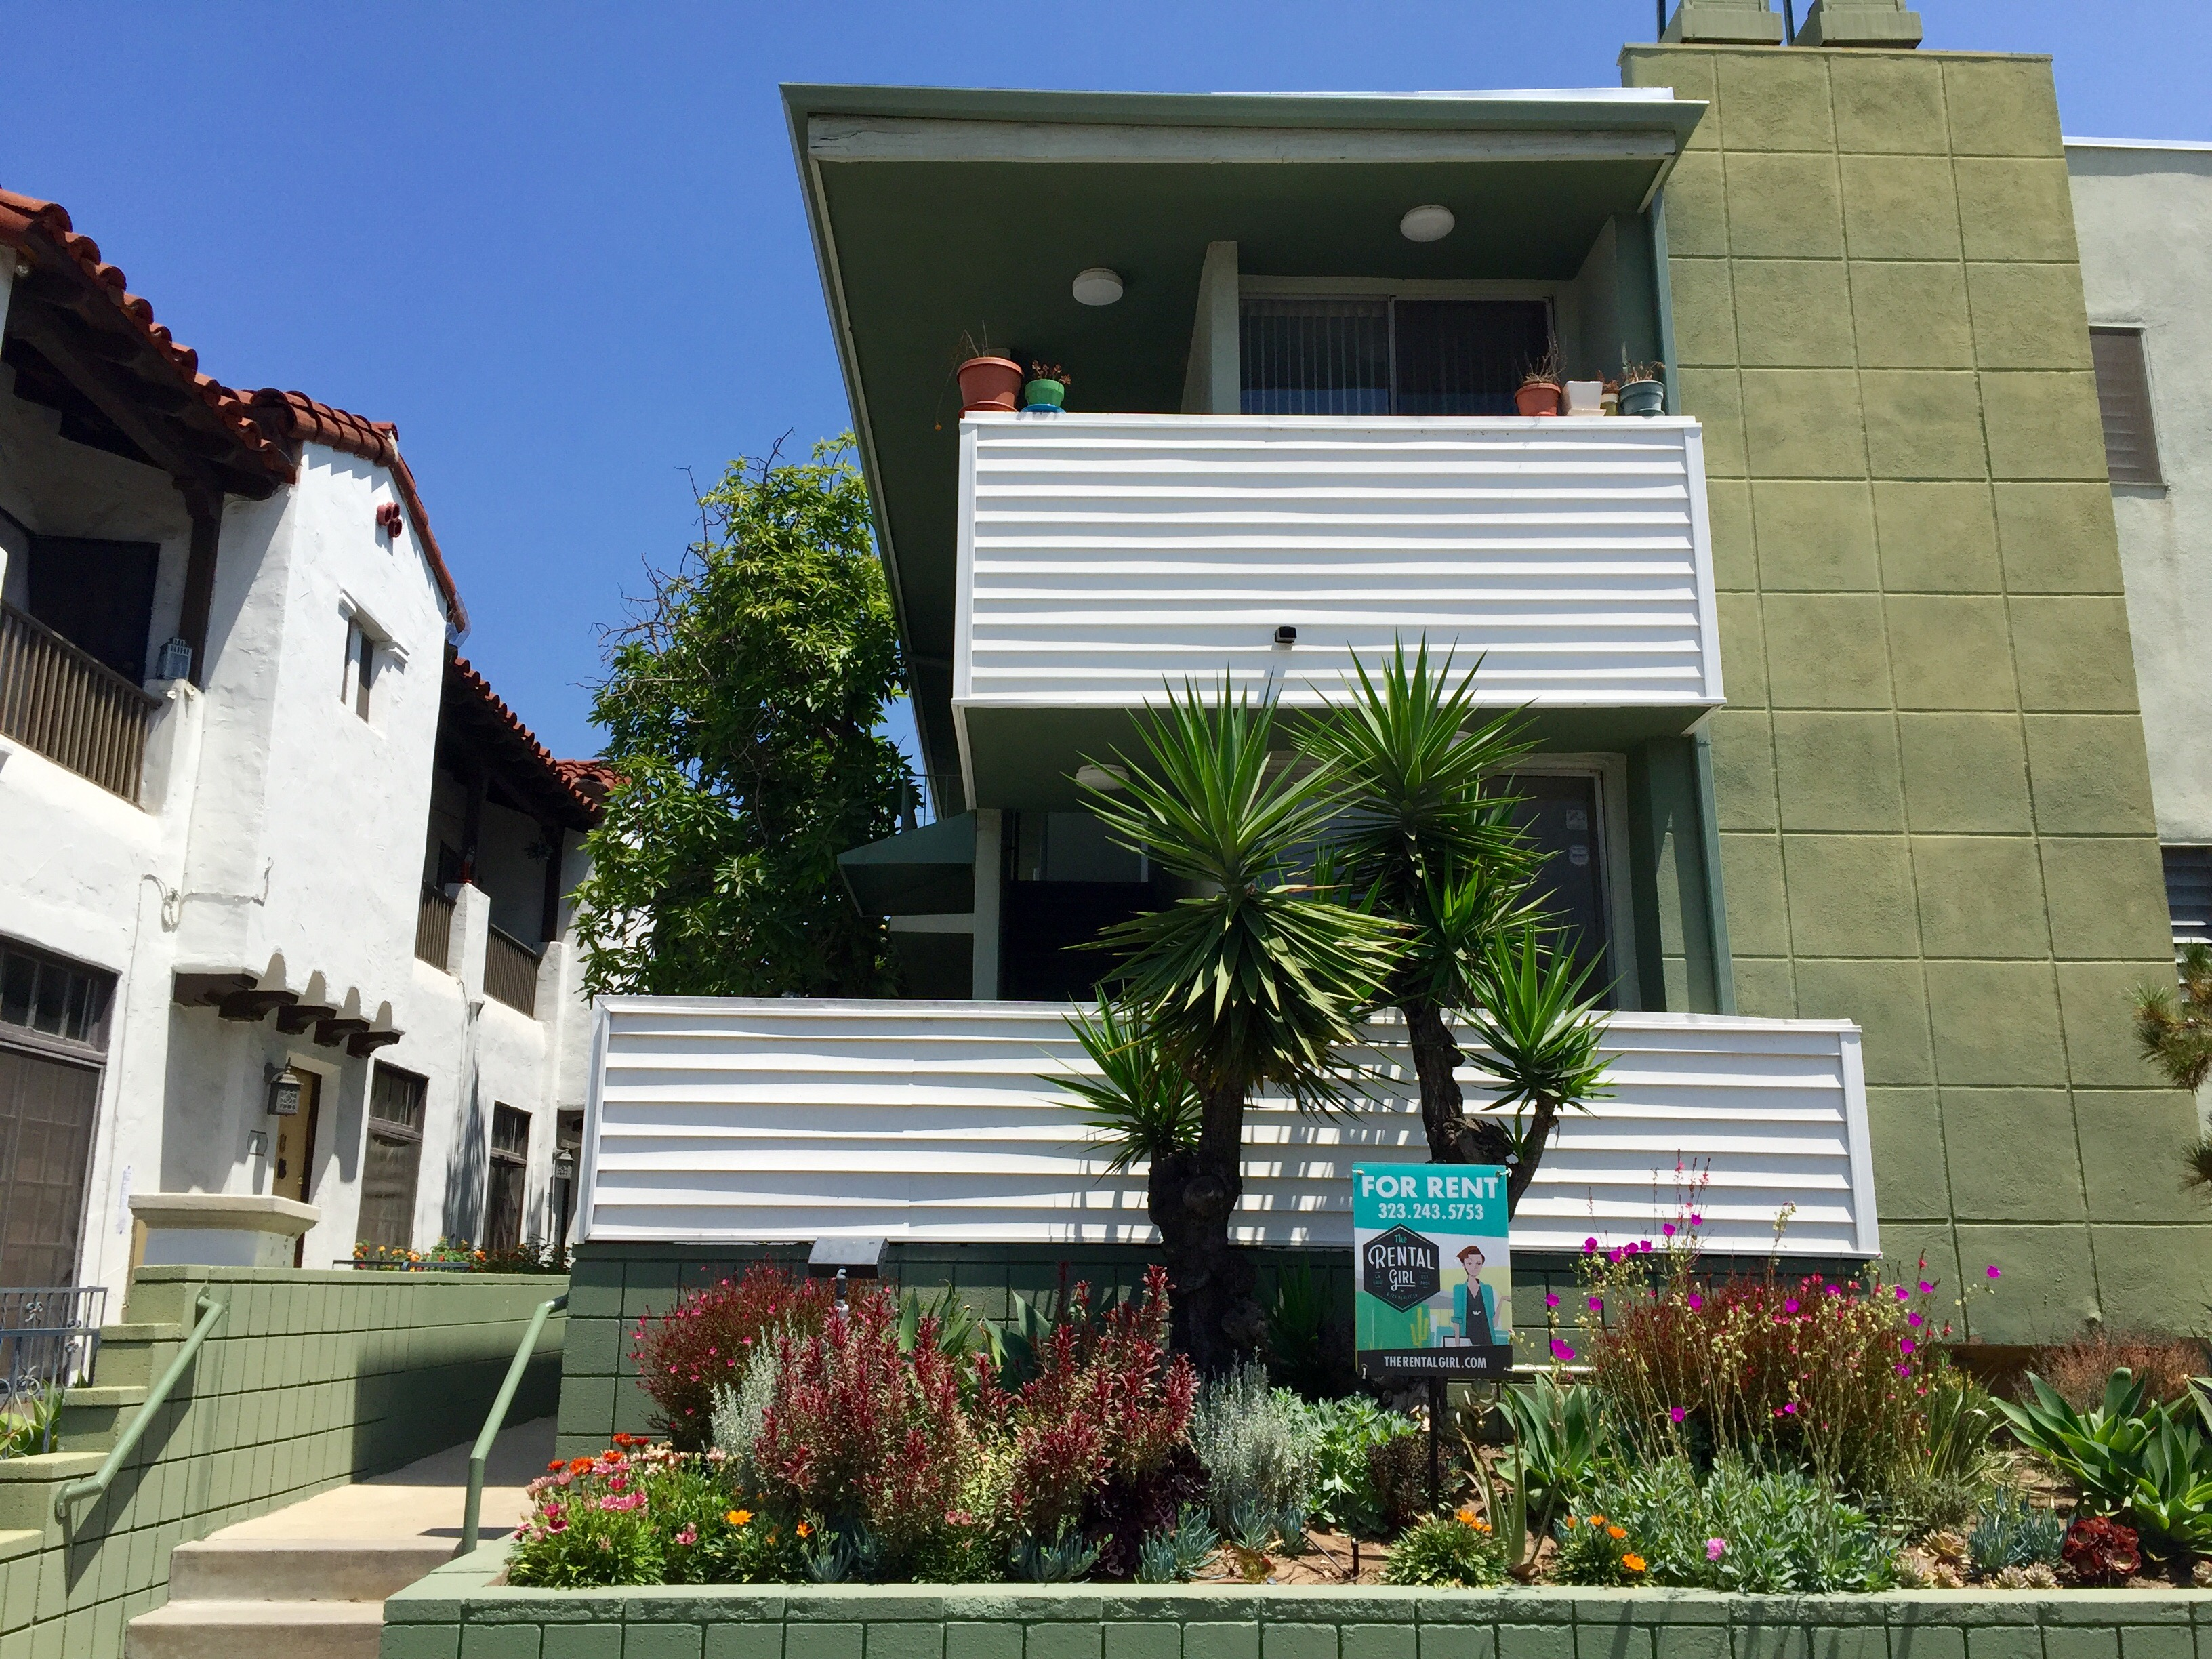 Mid-Century Modern One Bedrm w/ Private Balcony & Views of the Hills, Newly Renovated!